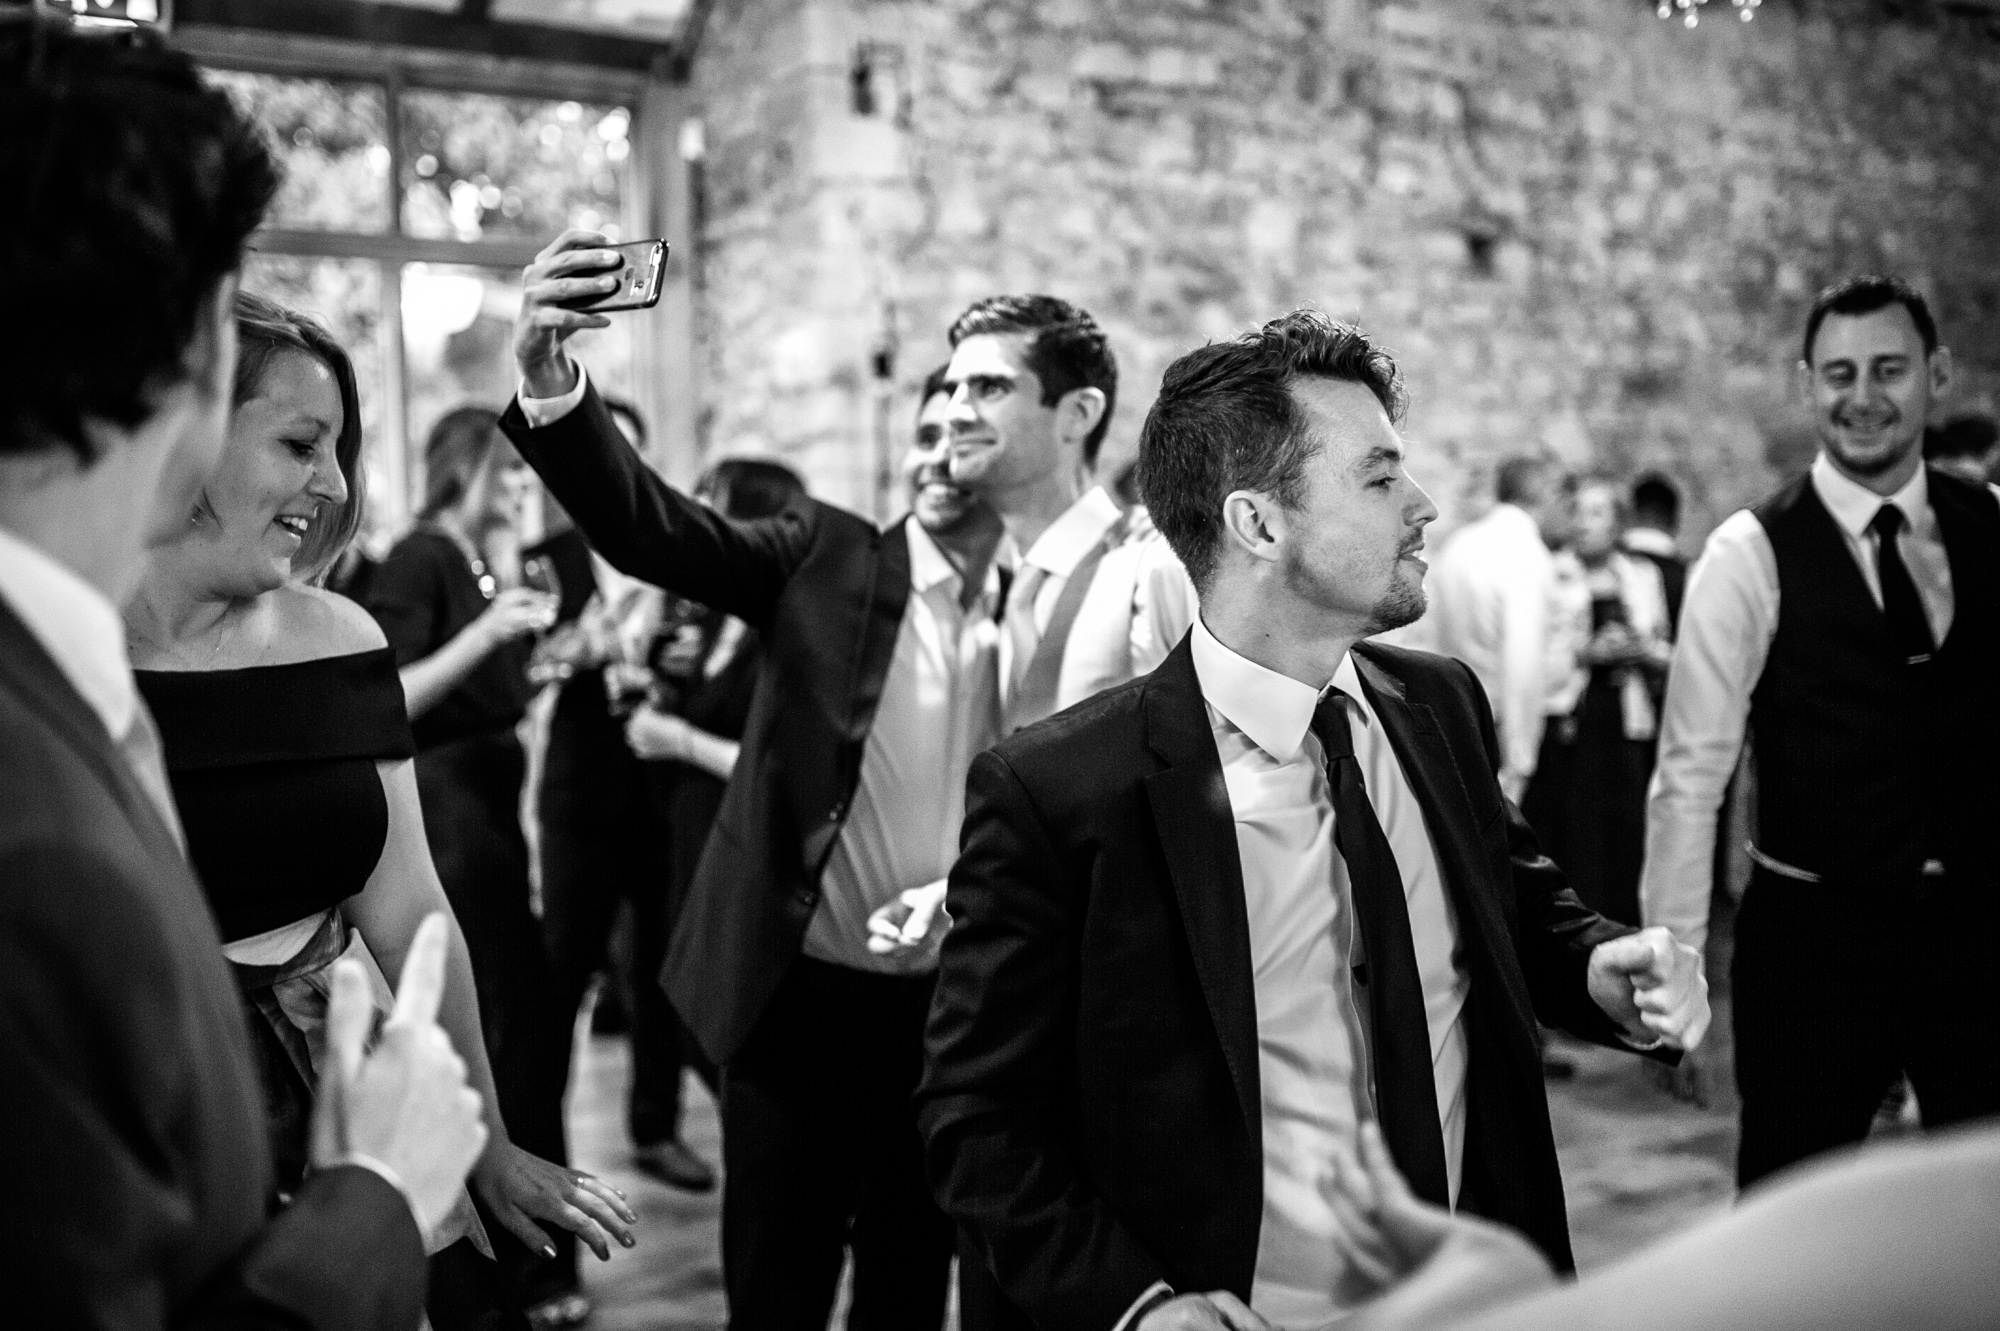 Notley Barn Wedding 26.10.18 34.jpg